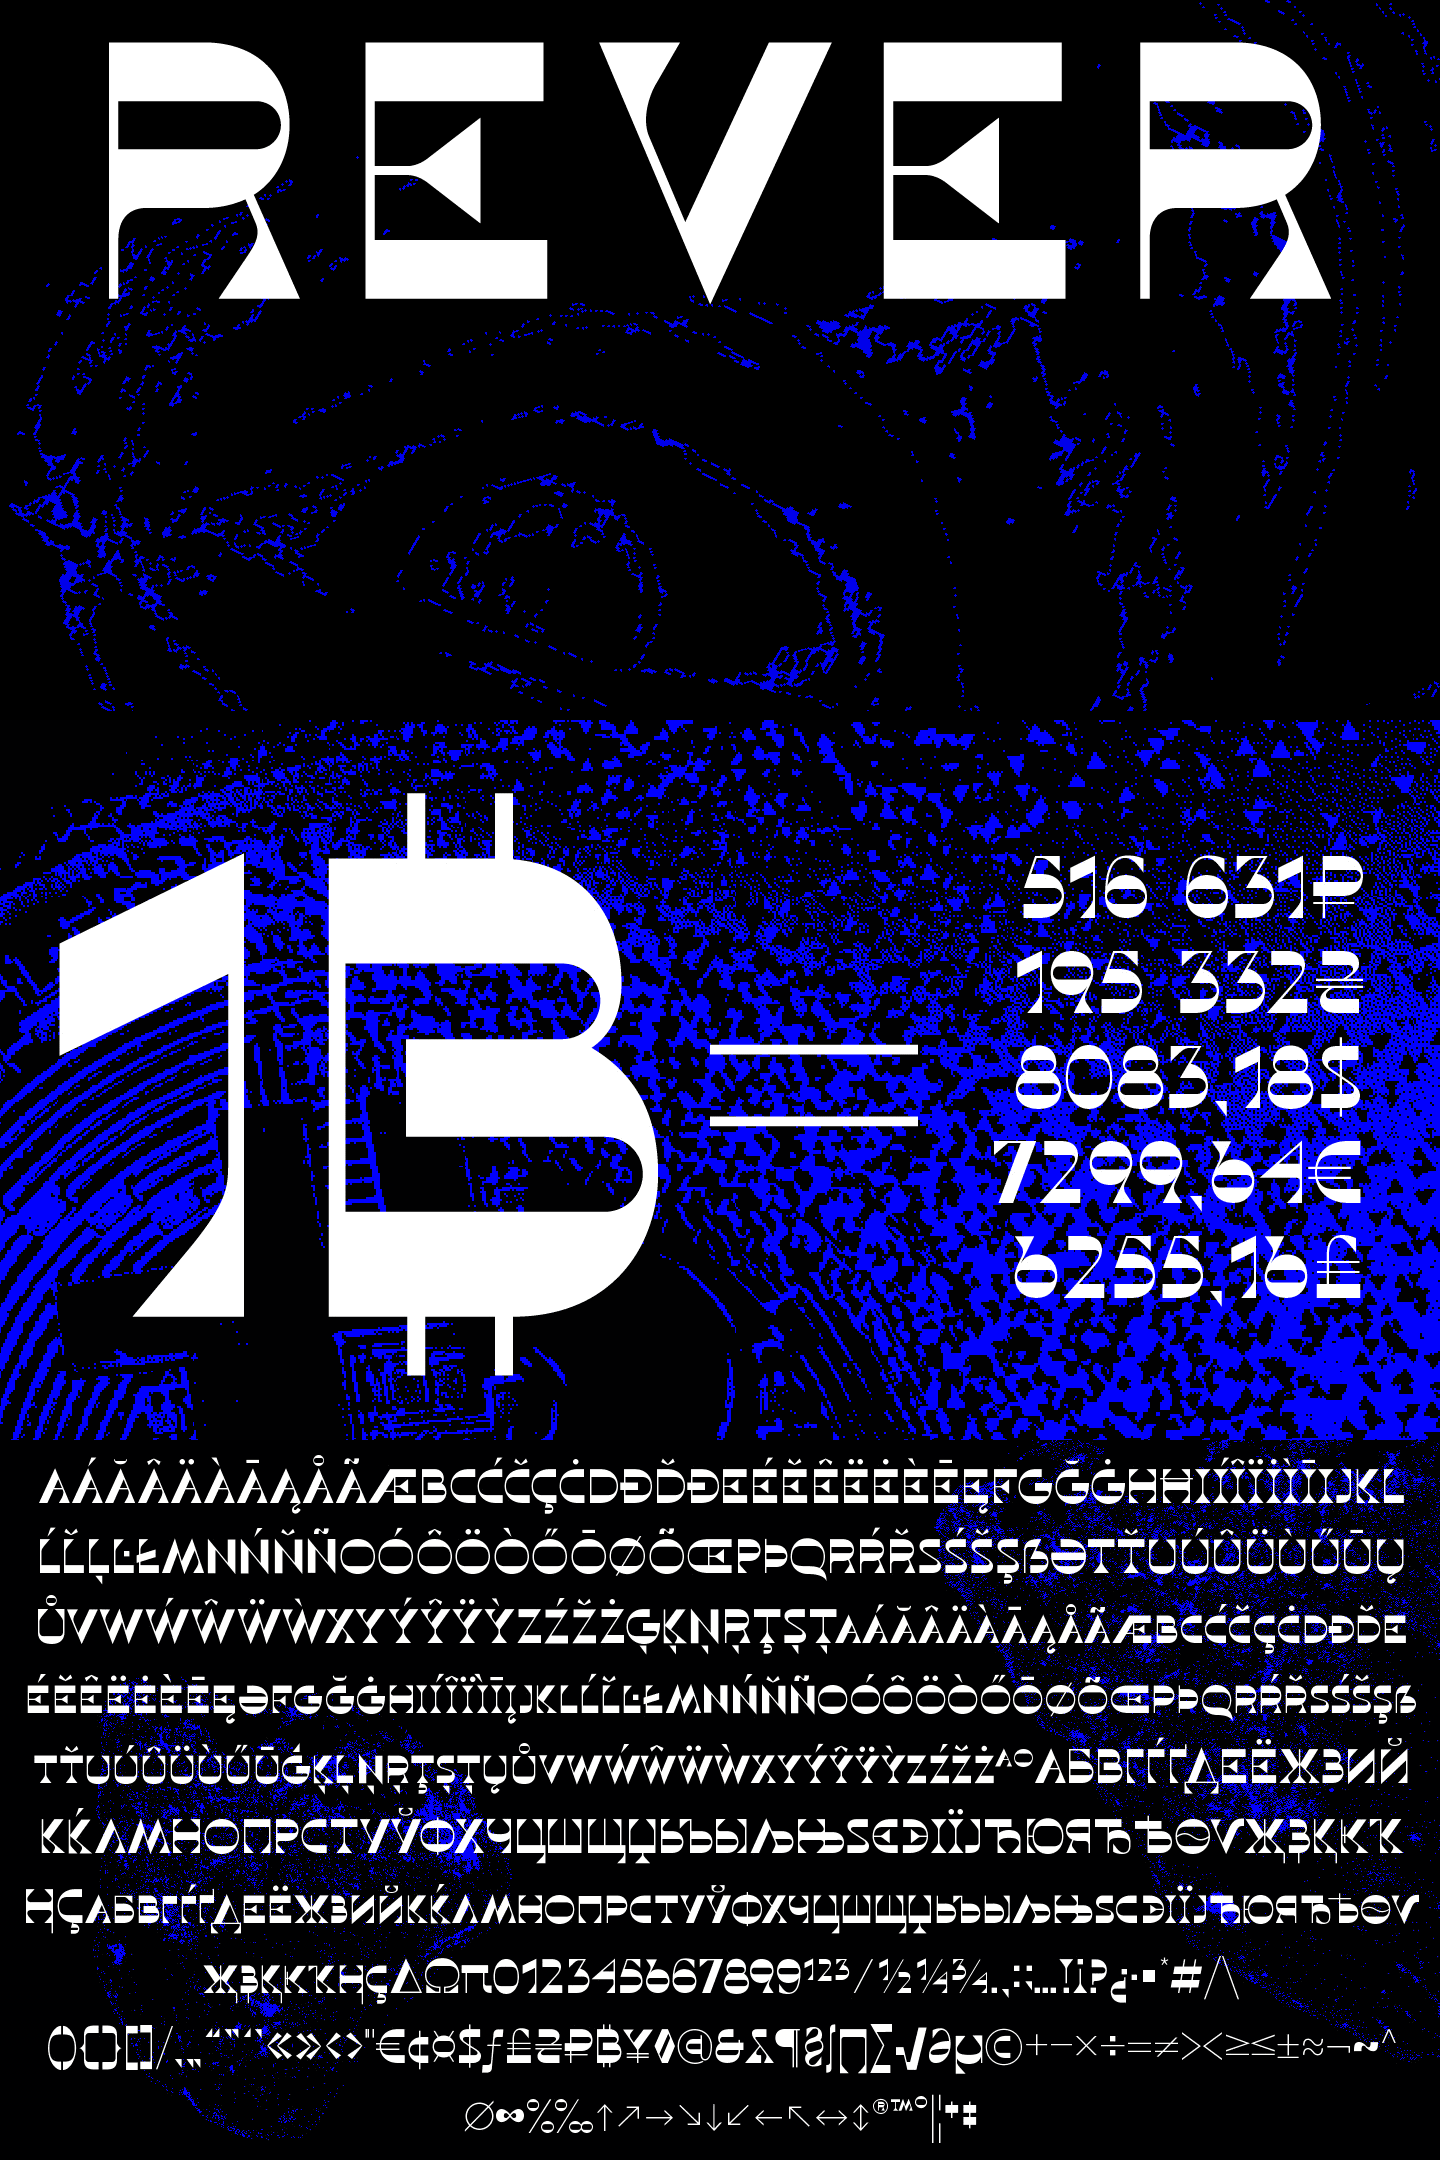 Rever (3 fonts) by ParaType 2019. Experimental display